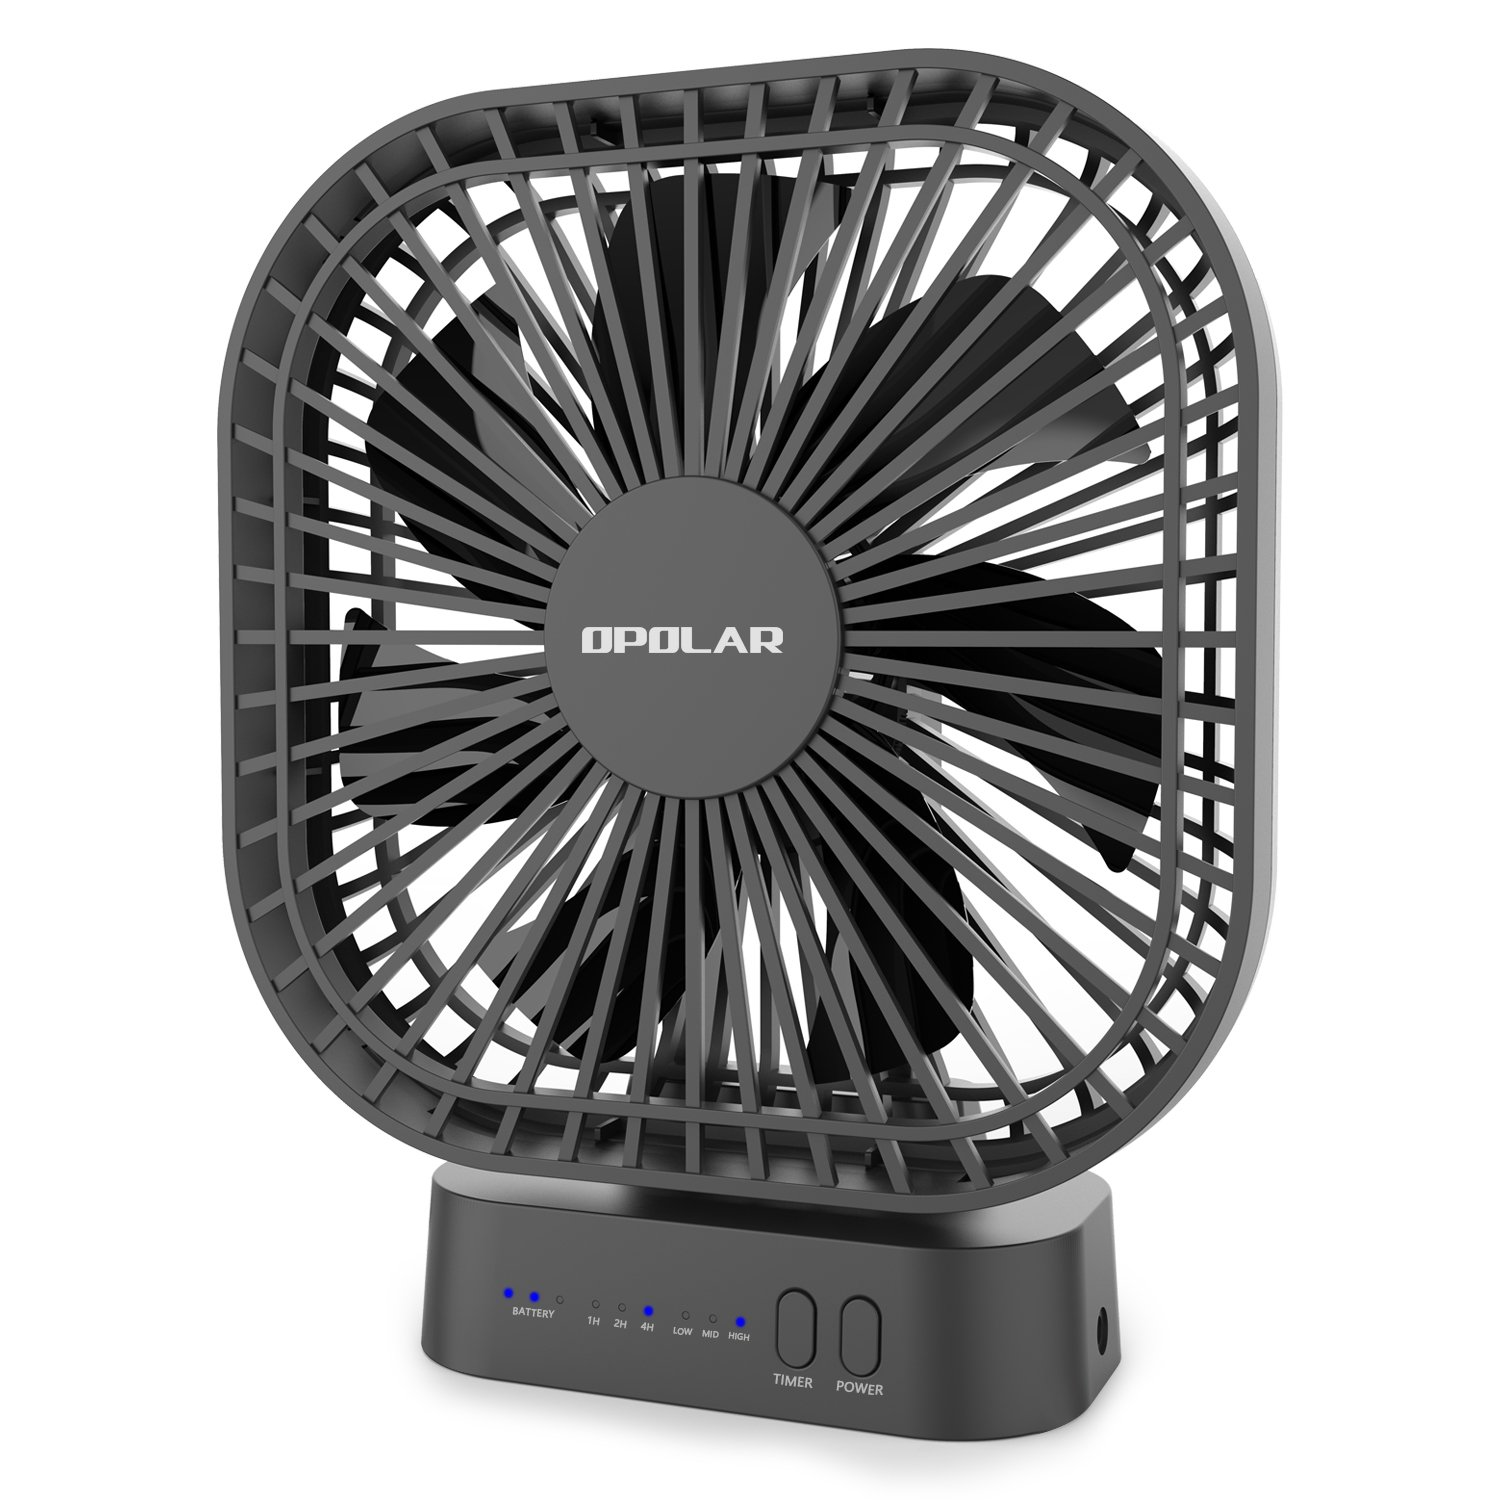 OPOLAR 6700mAh Battery Operated Fan, Personal Table Mini USB Fan with Timer, Strong Wind, 3 Speeds, 7 Blades, Powered by USB or Rechargeable Battery, Super Quiet, for Office, Camping, Outdoor by OPOLAR